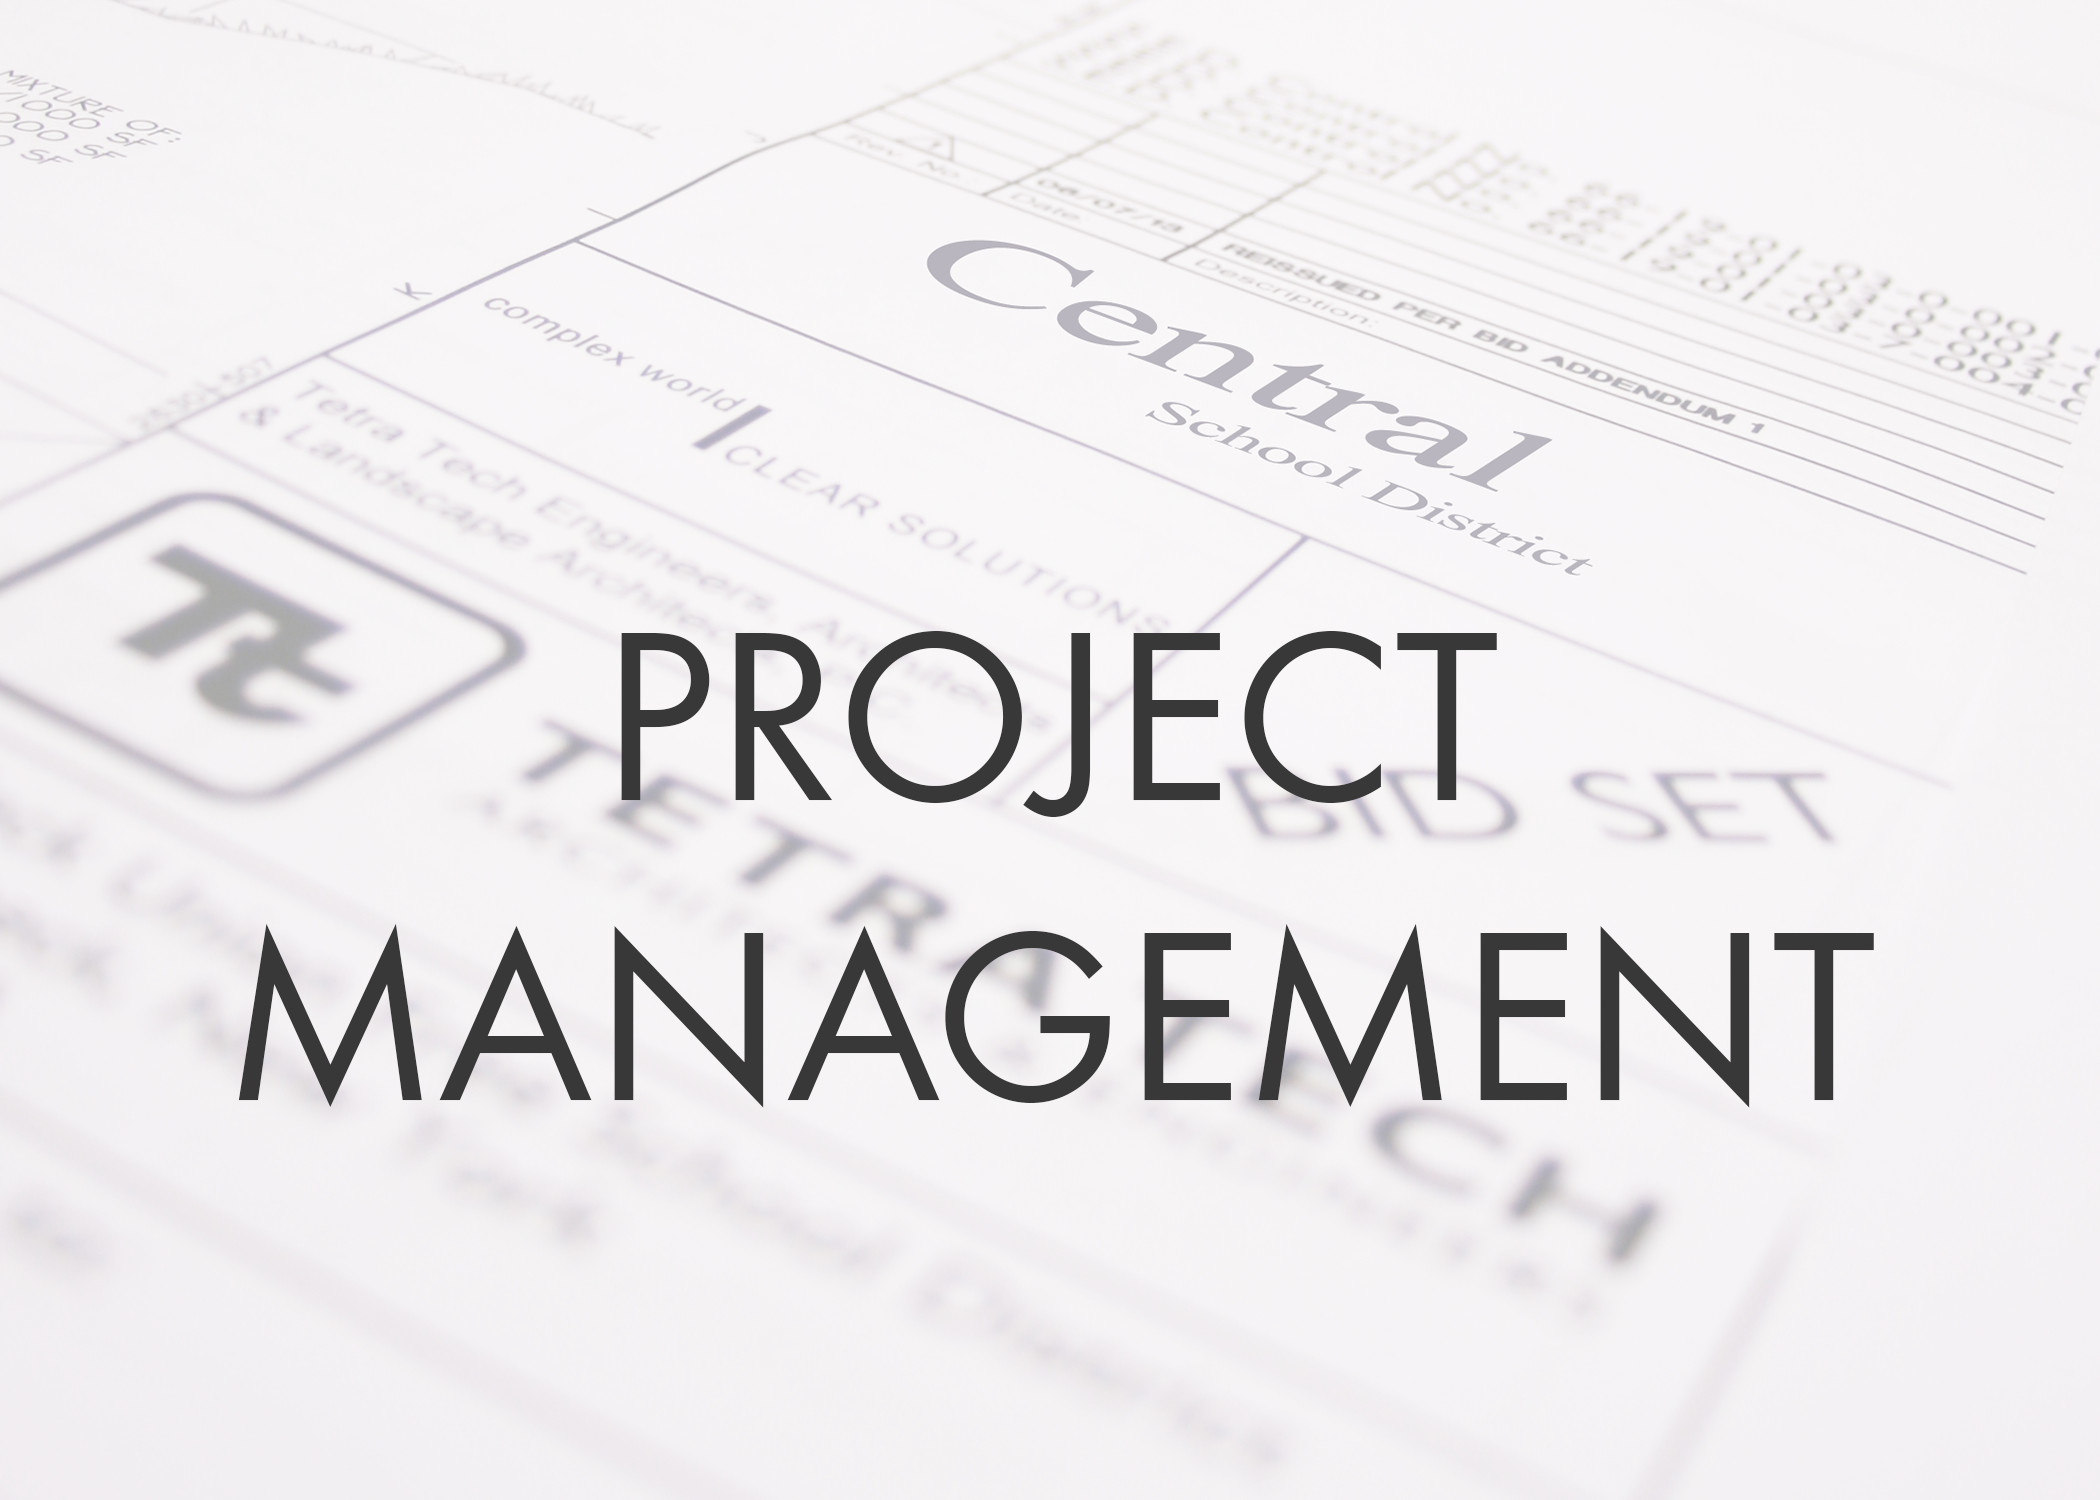 Funding / State Aid Calculations Project Schedulin Permitting & Approval NYSED Office of Facilities Planning Documents & Form Quality Assuranc Project Oversight